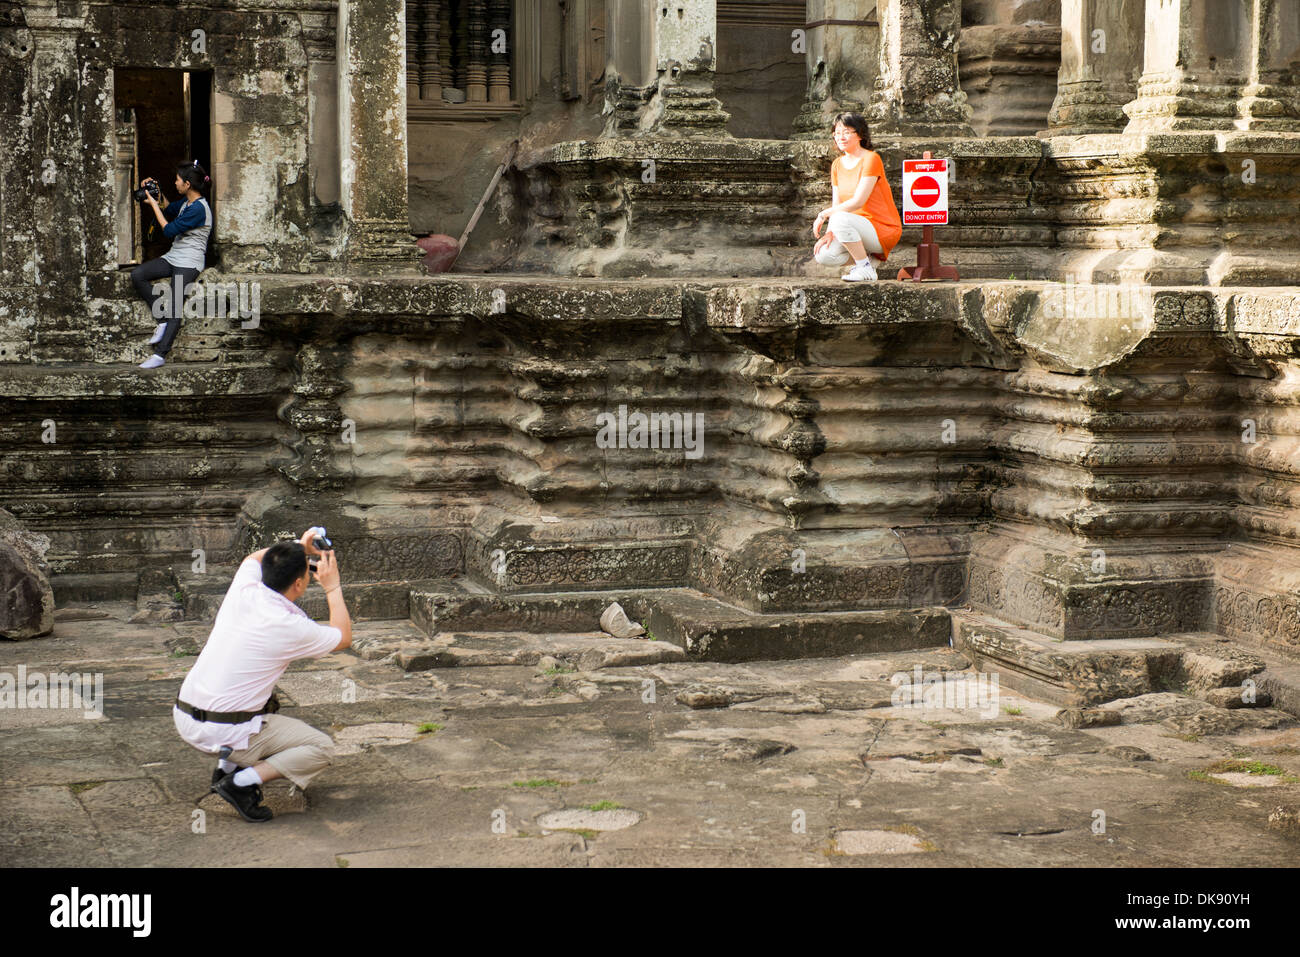 Some tourist violate roul of Angkor War, Siem Reap, Cambodia - Stock Image